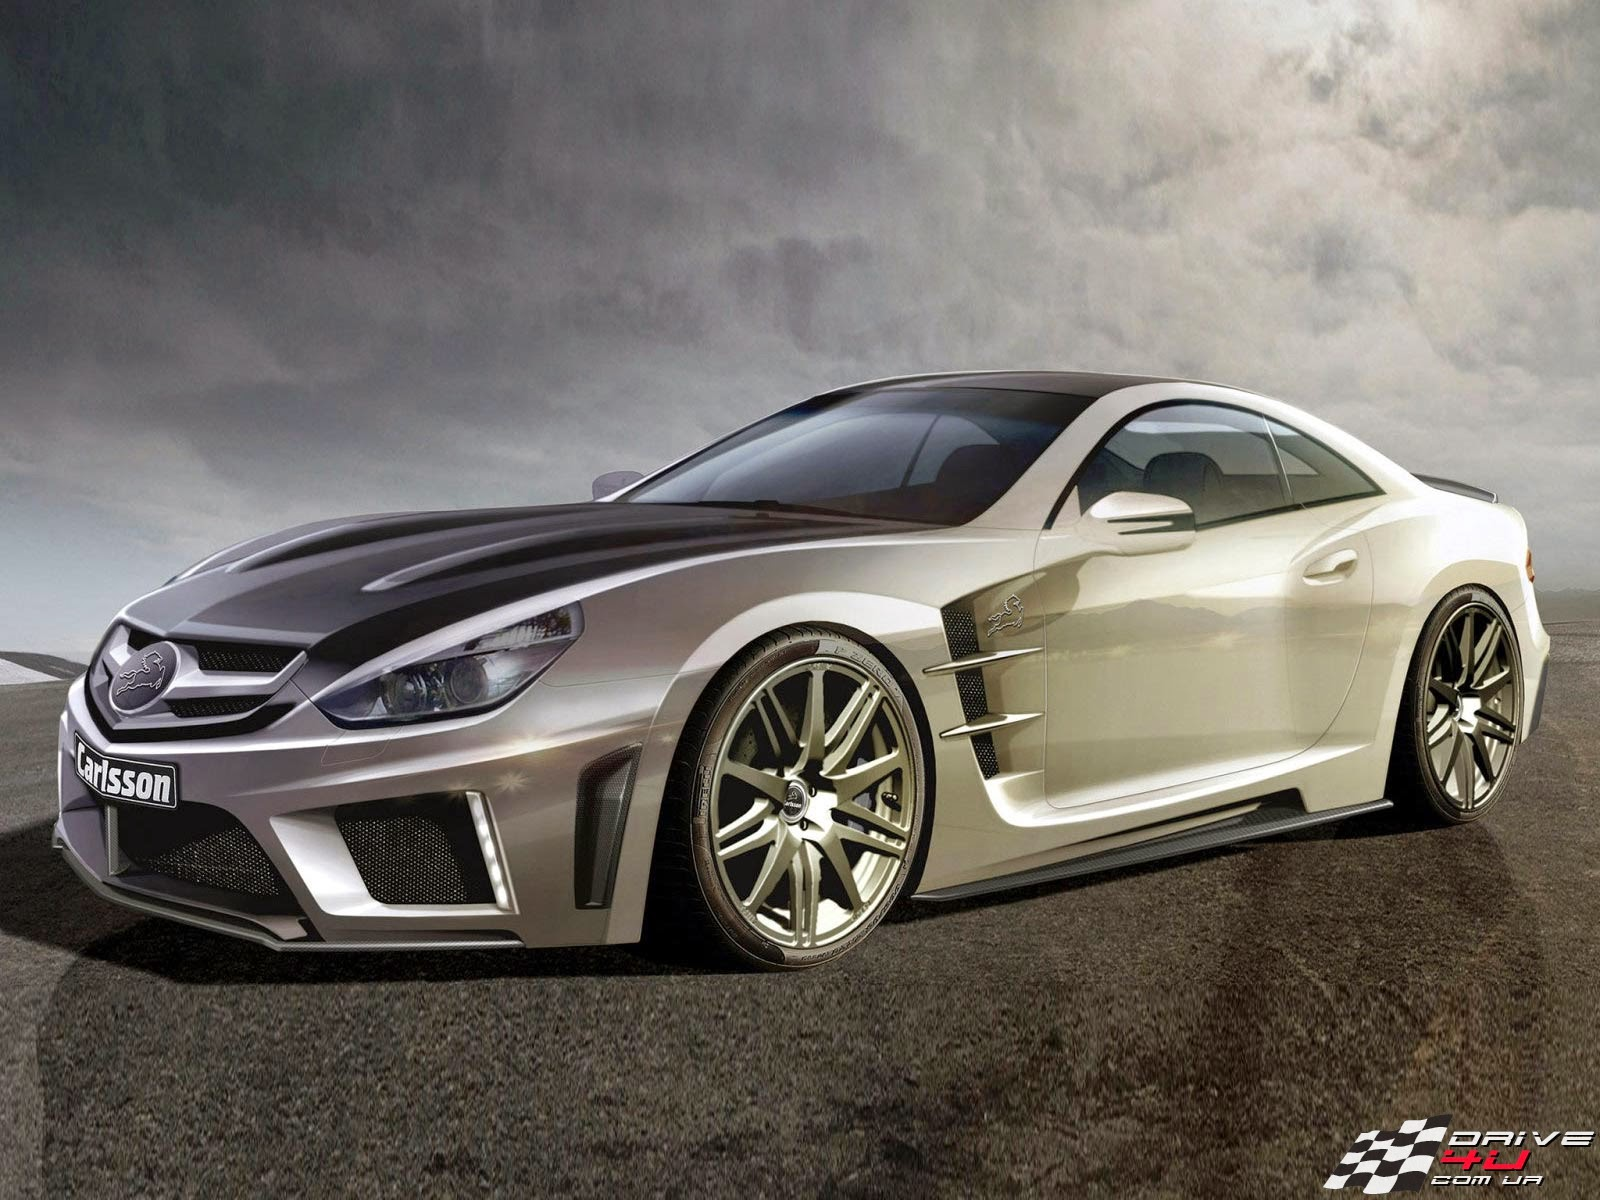 Top 5 Luxury Sports Car and rare in the World